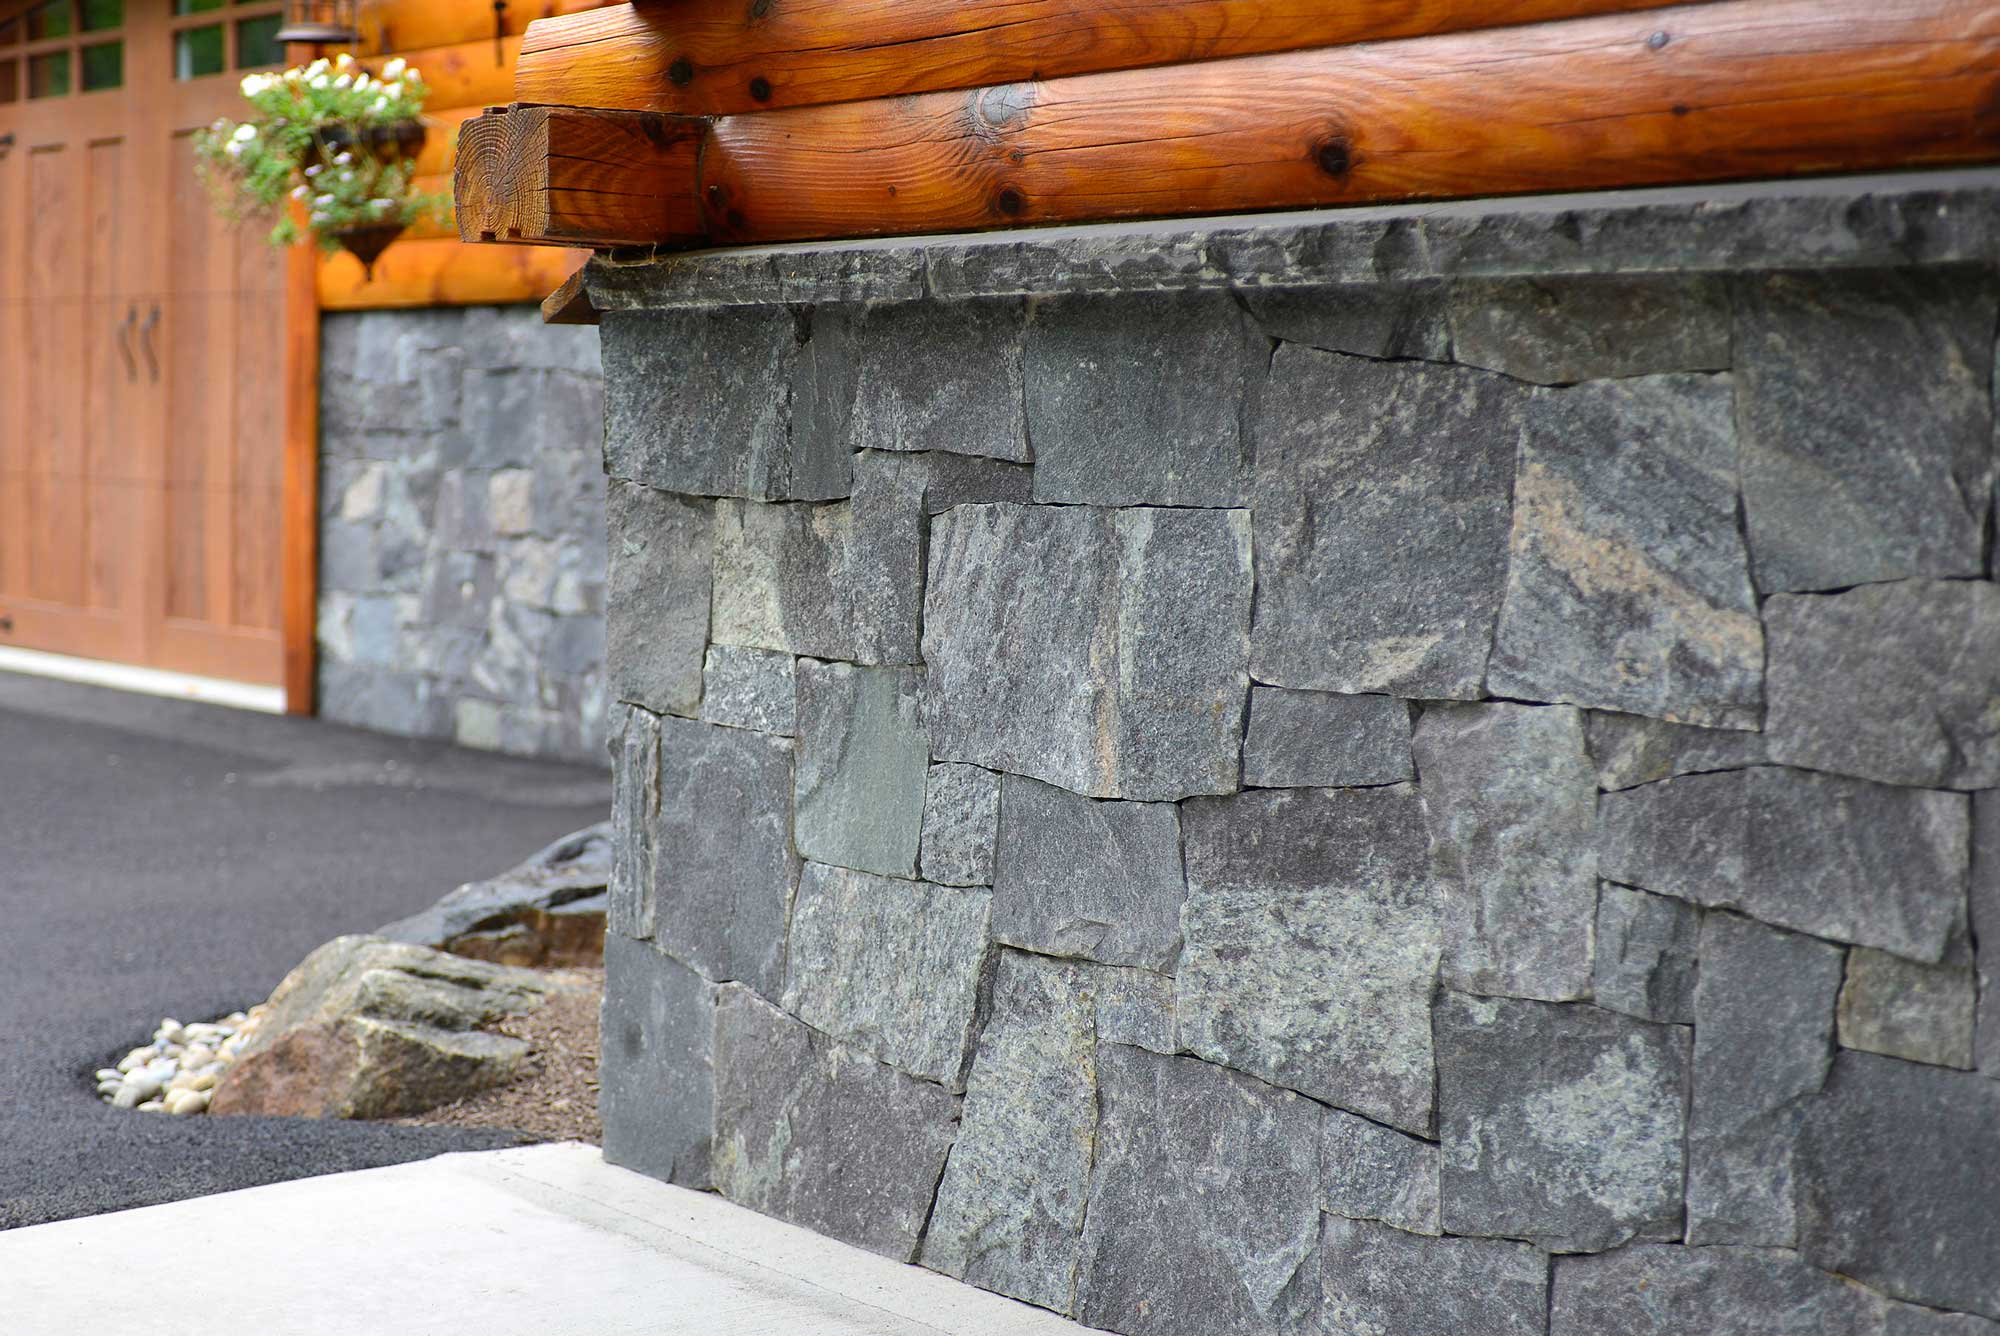 Tightly fit granite stone exterior wall with wood siding on top